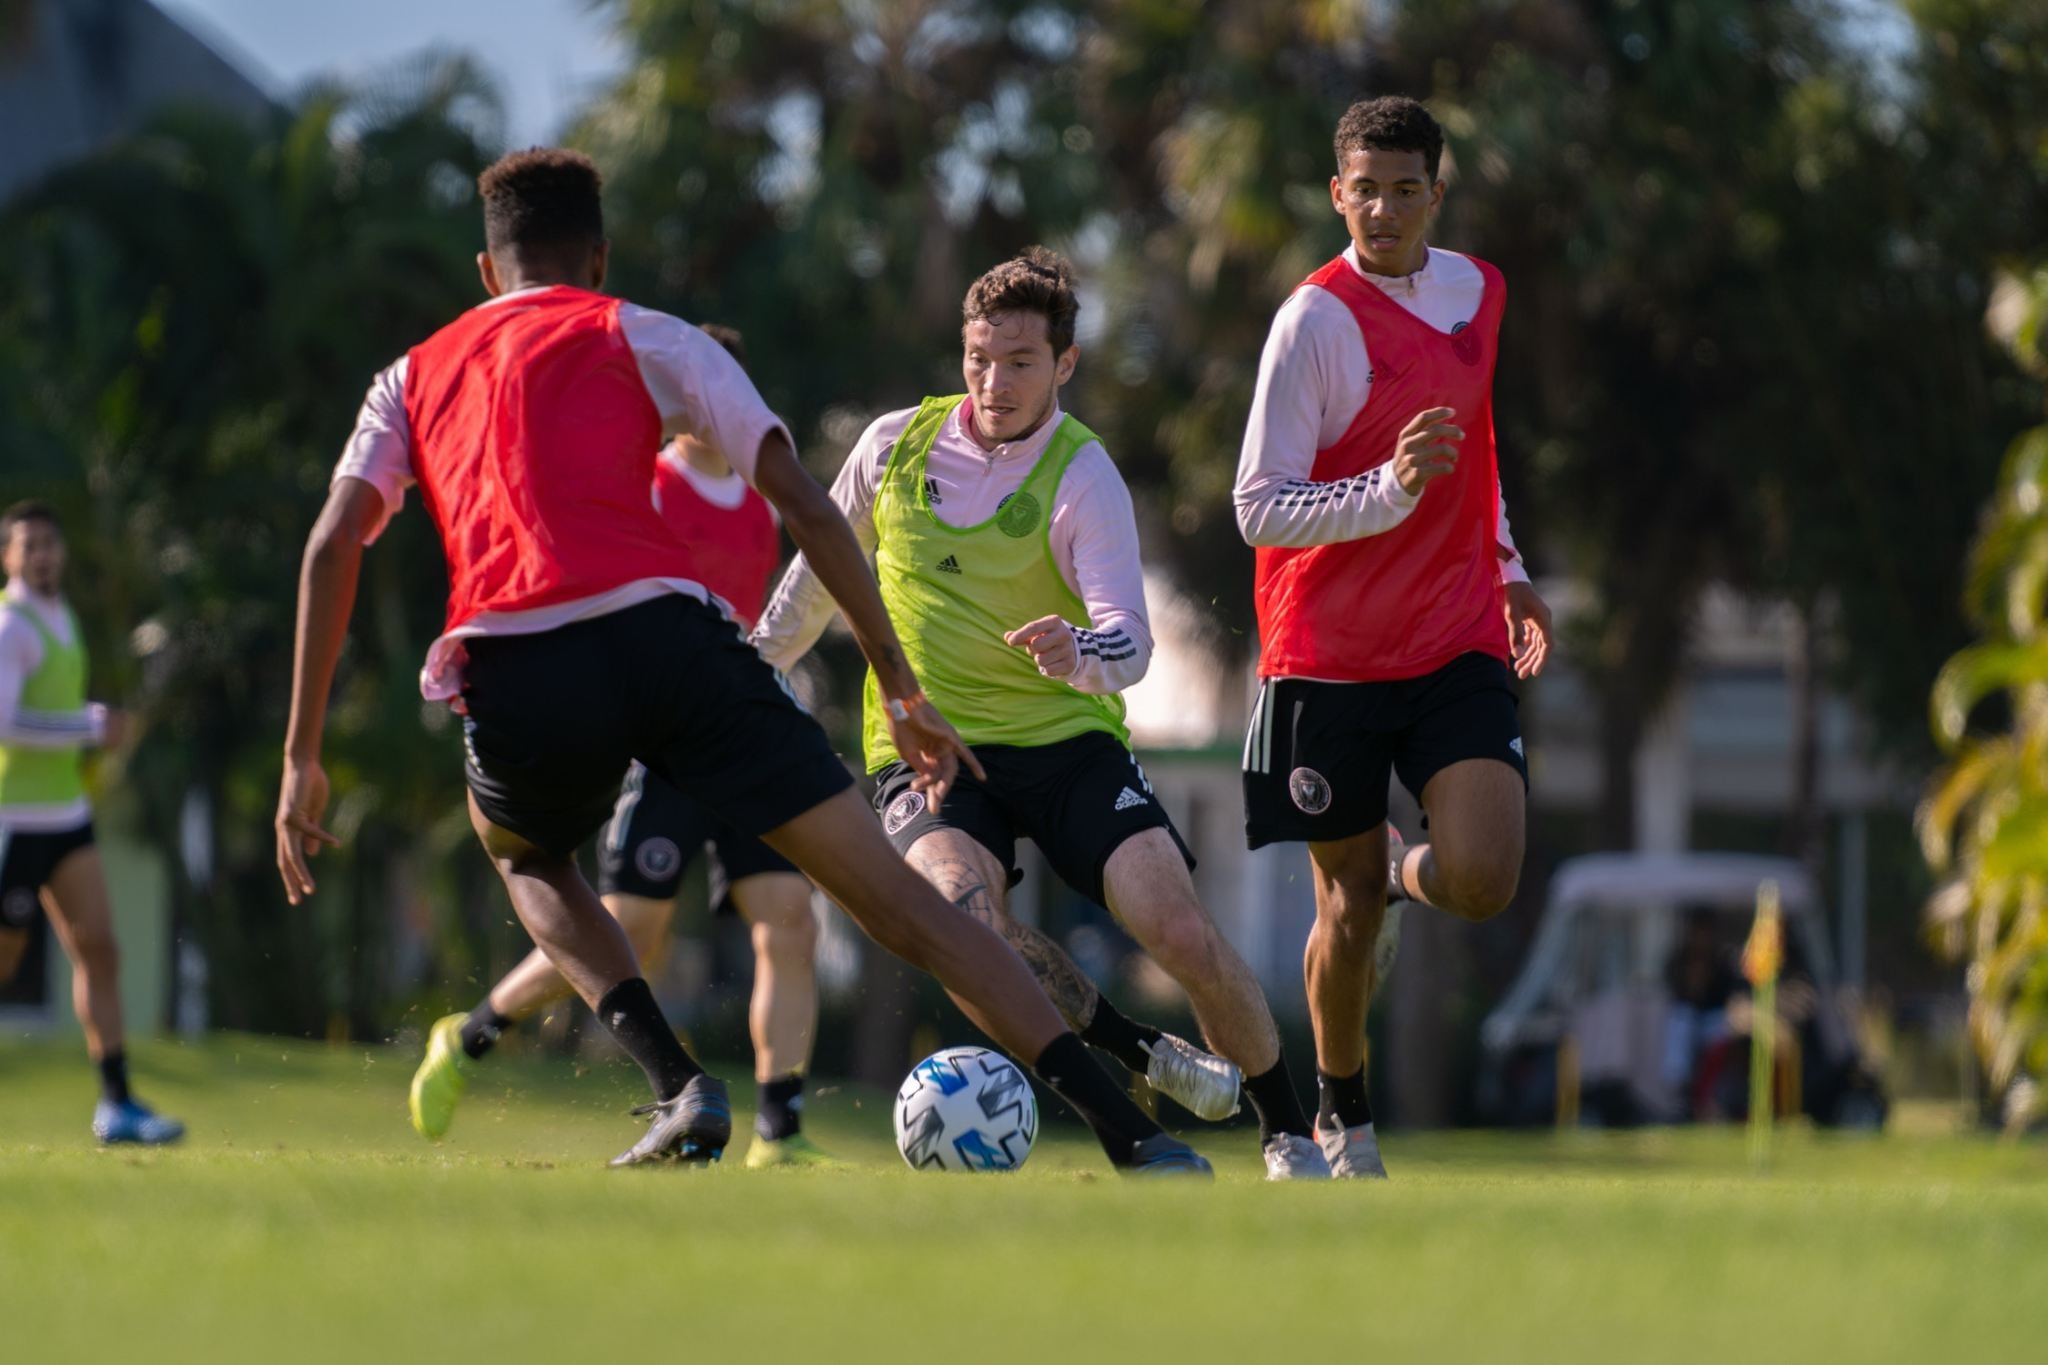 port saint lucie - russo law and soccer